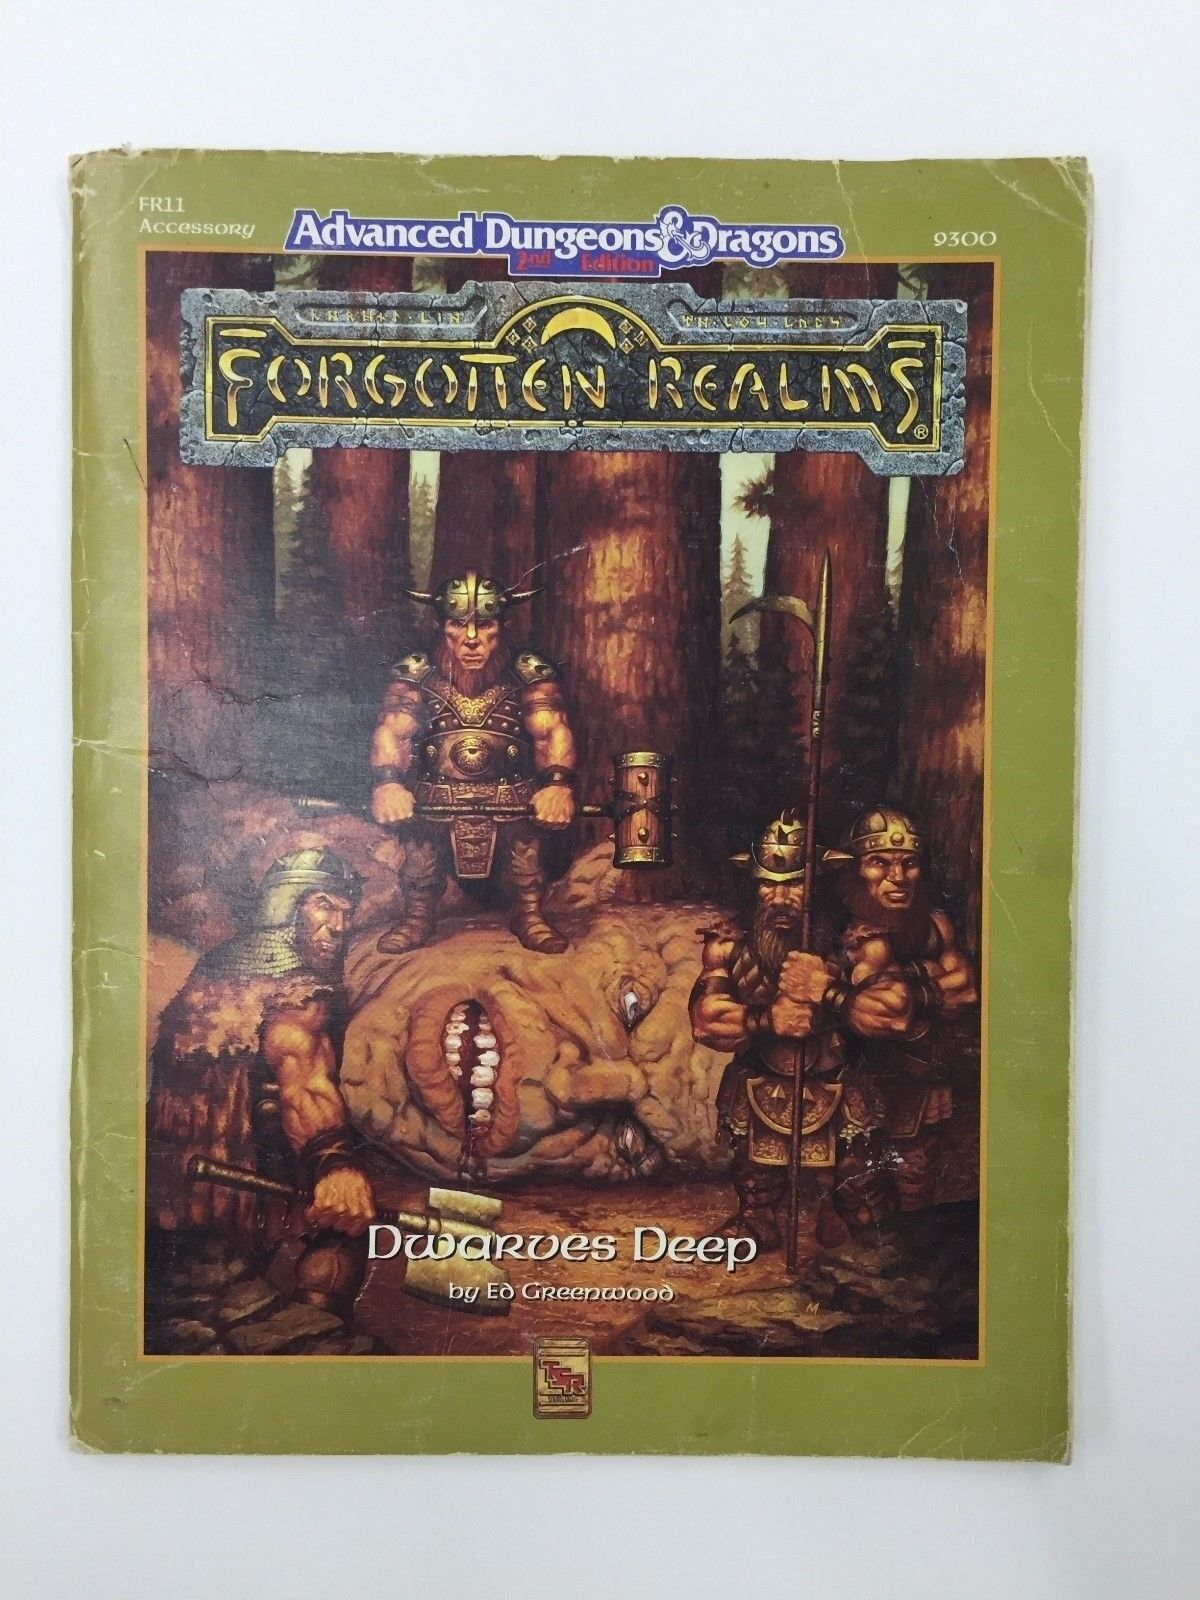 TSR ADVANCED DUNGEONS & DRAGONS FORGOTTEN REALMS DWARVES DEEP 9300 FR11 1990